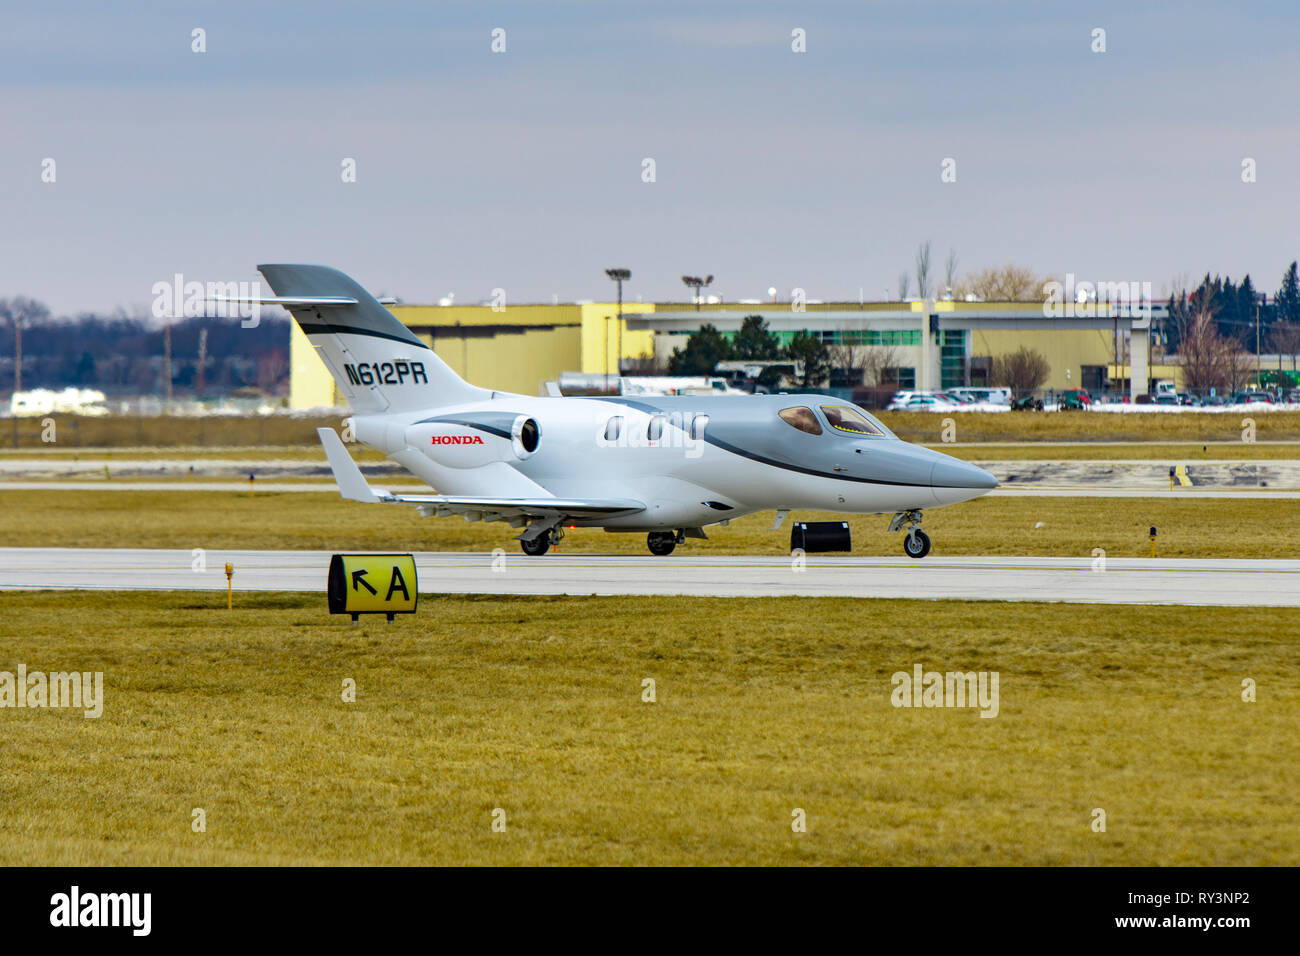 Wheeling, Illinois, United States - March 10, 2019: Honda Jet HA-420 small business jet taxiing after landing. - Stock Image